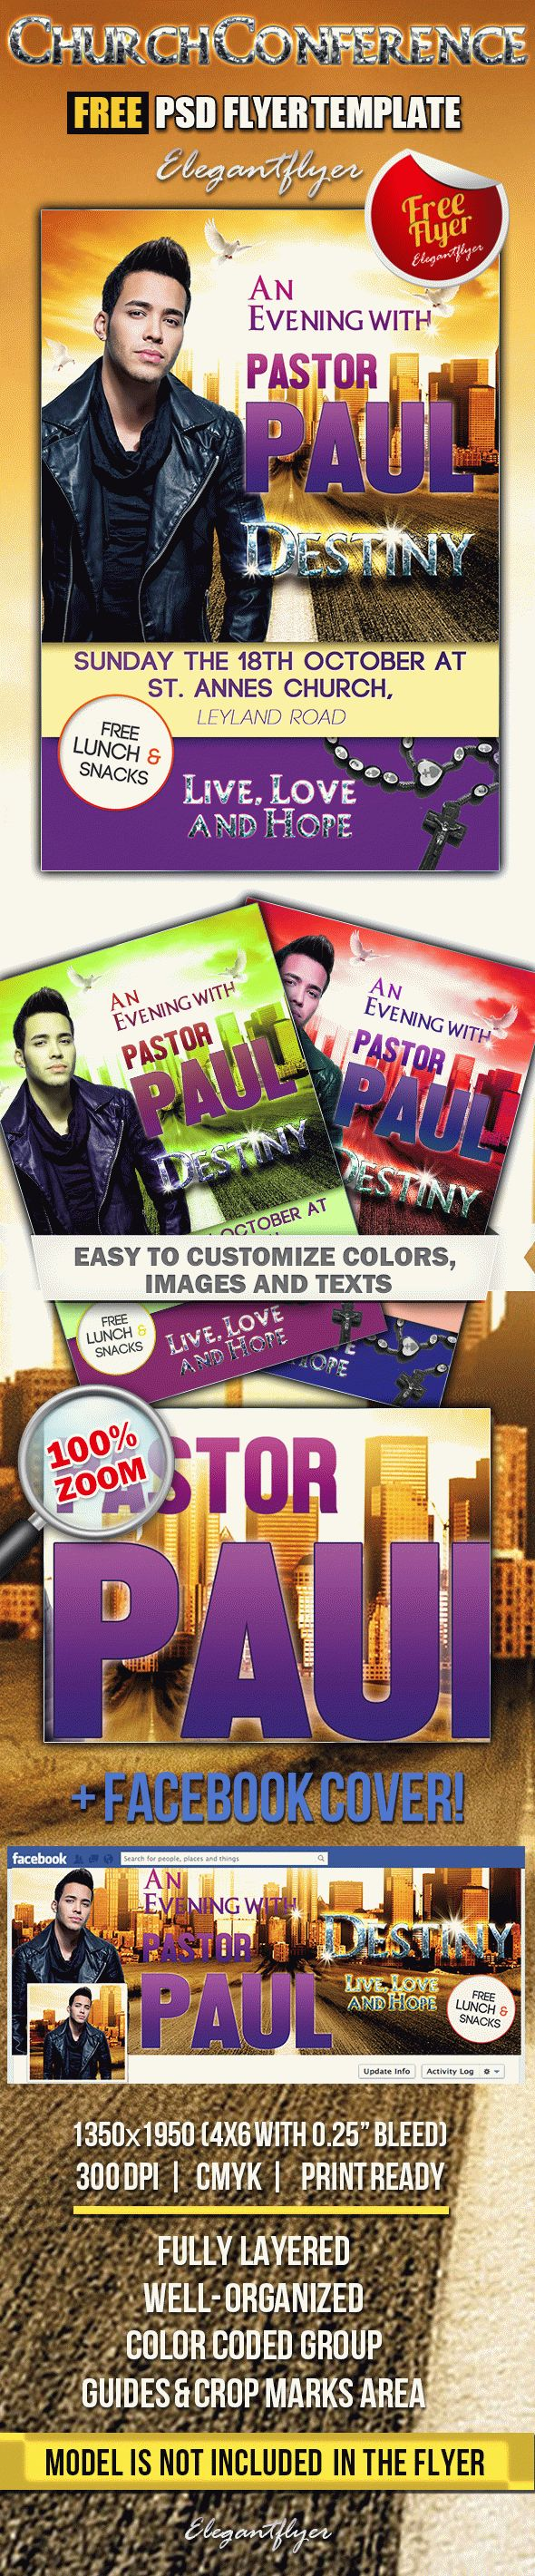 church conference flyer psd template facebook cover by church conference flyer psd template facebook cover